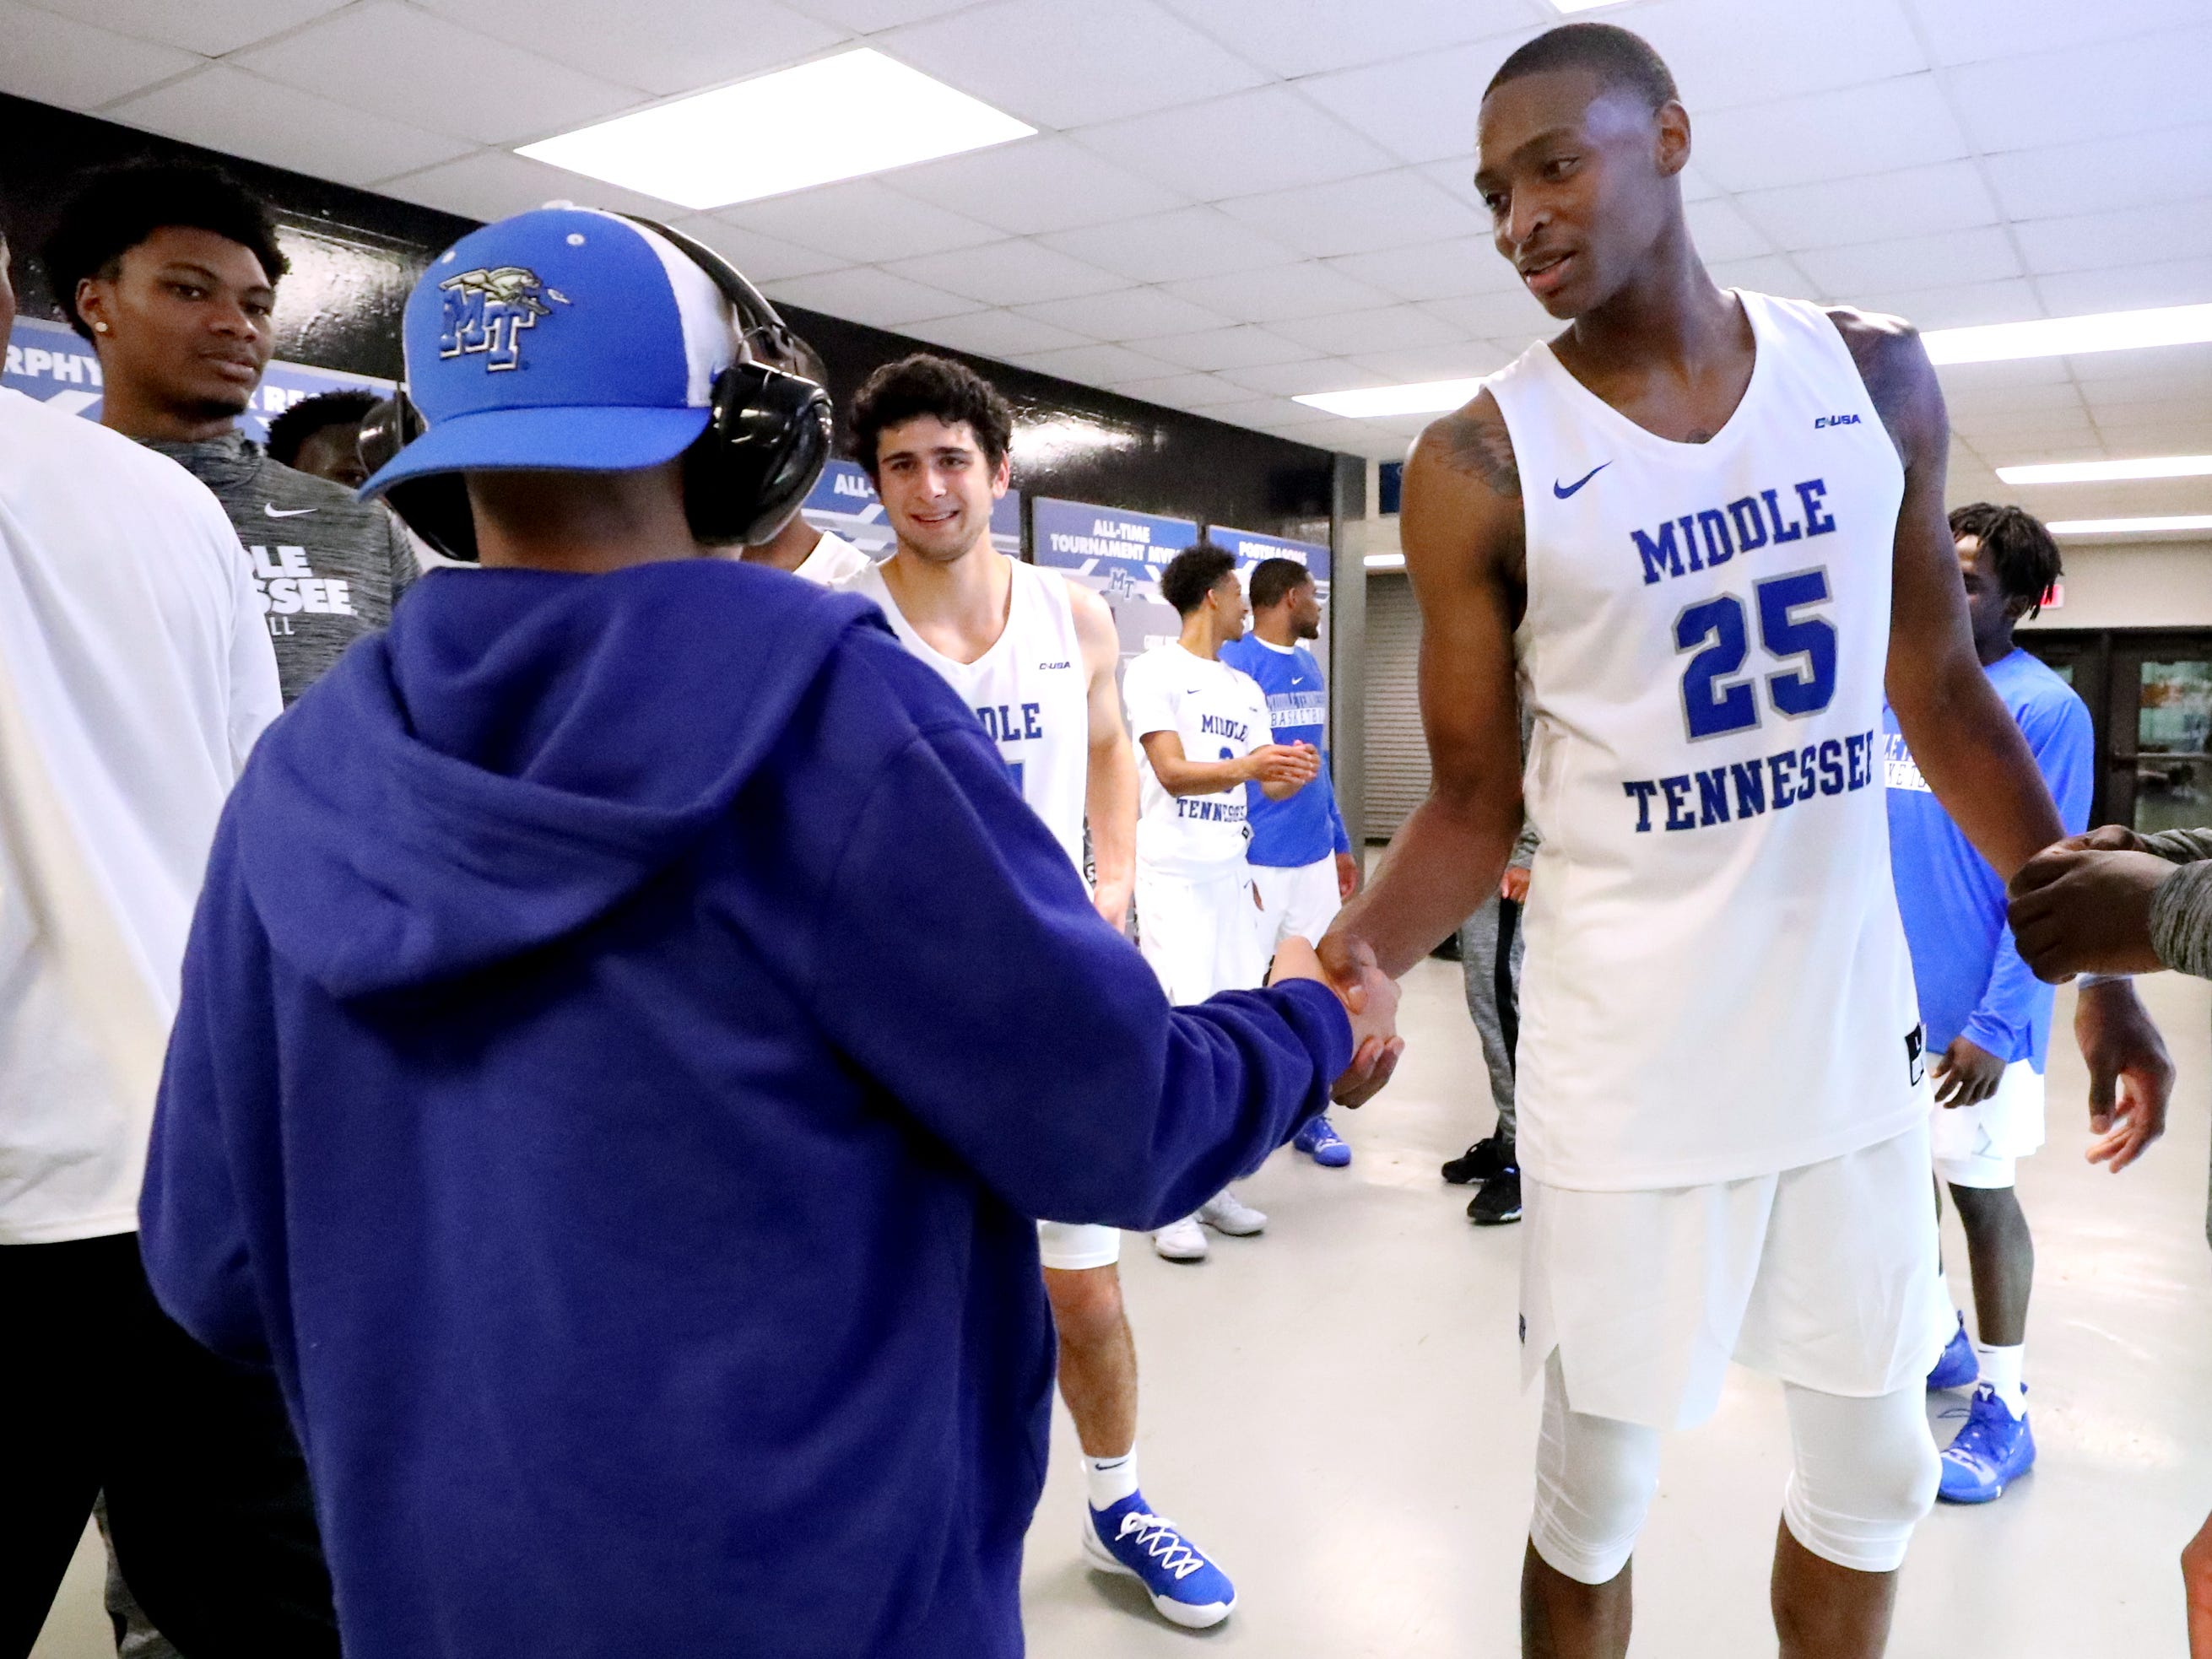 MTSU's Karl Gamble (25) thanks fans for coming to the game as they leave after MTSU defeated Lees-McRae on Tuesday, Nov. 6, 2018.